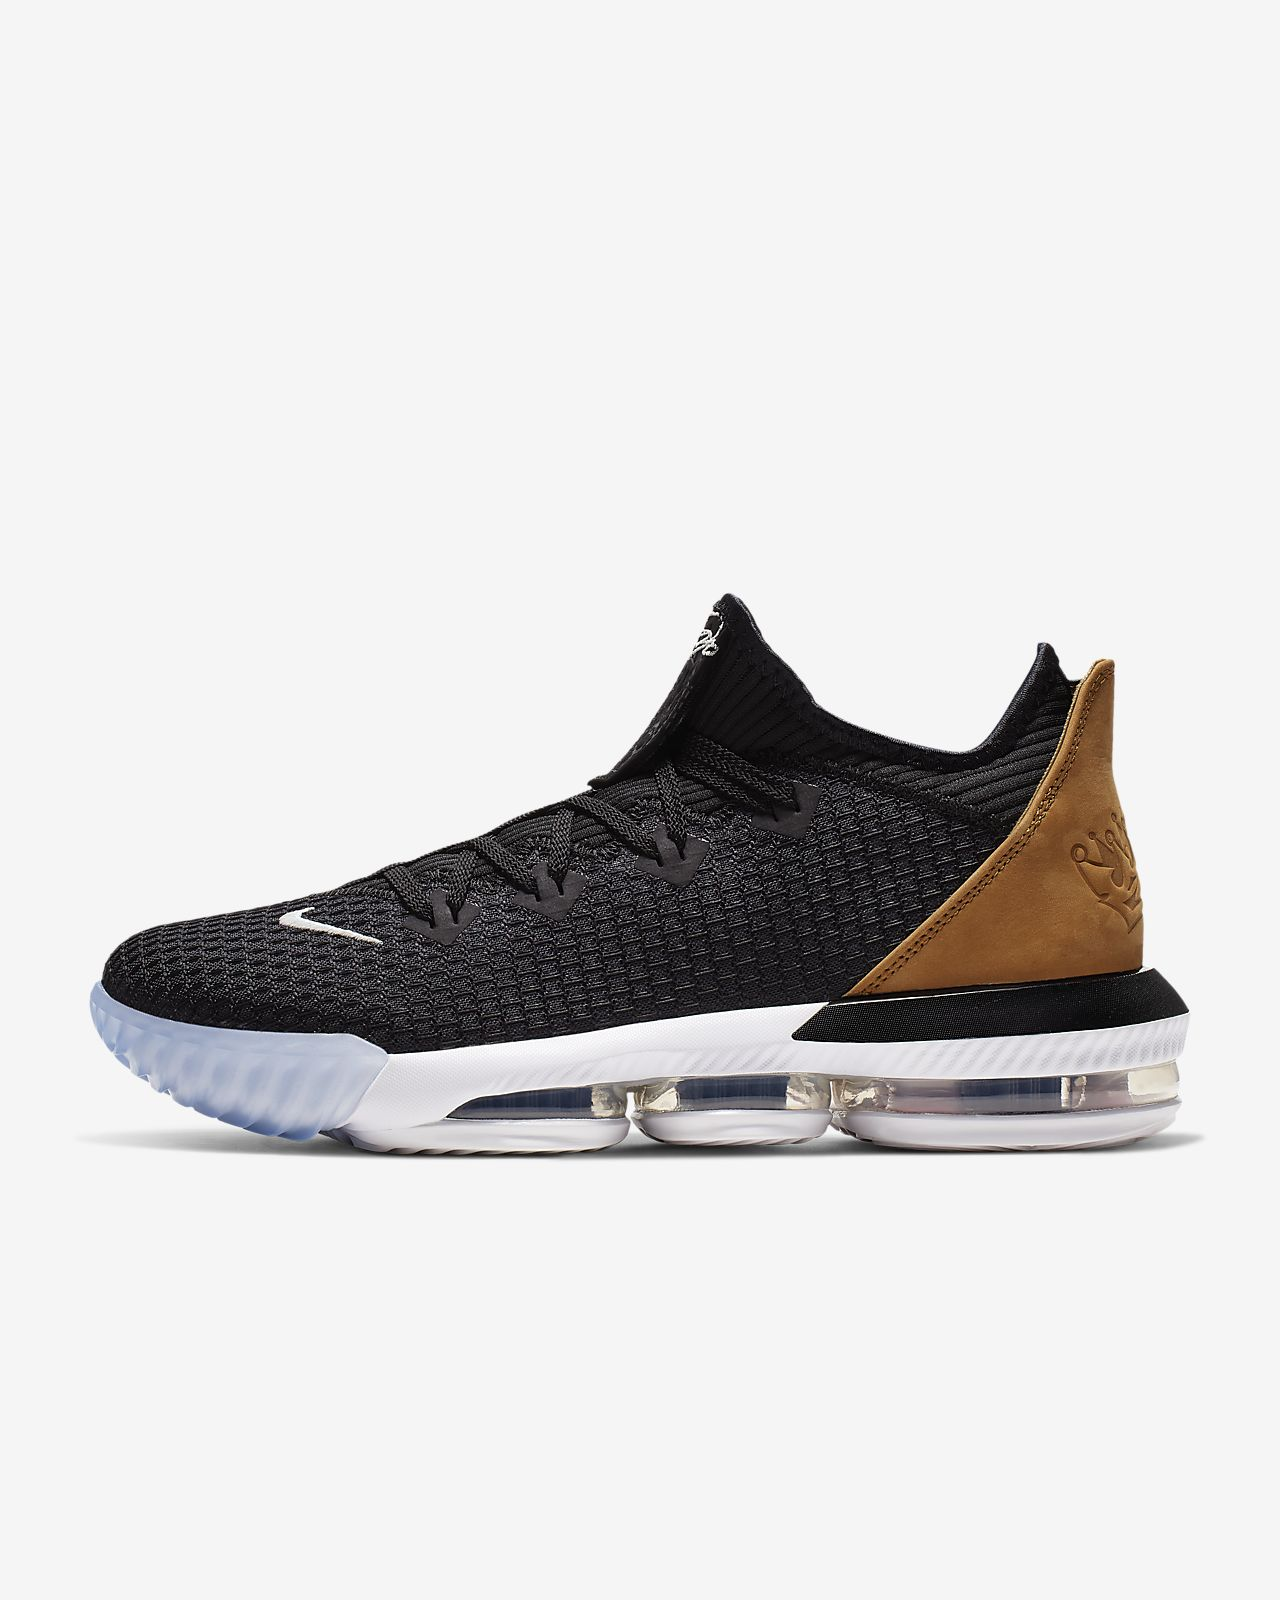 LeBron 16 Low Basketball Shoe